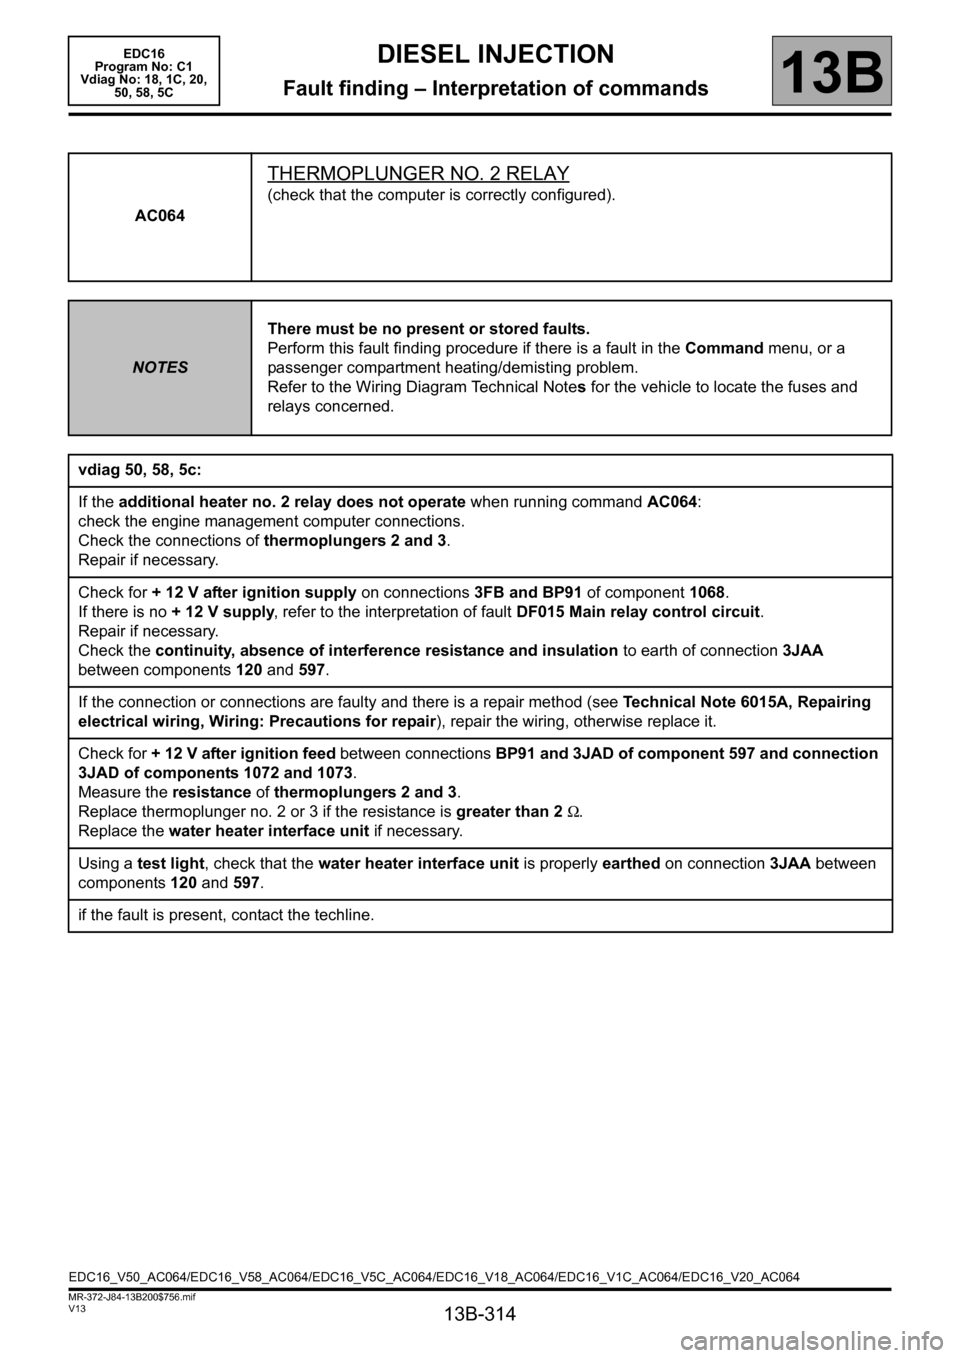 medium resolution of renault scenic 2011 j95 3 g engine and peripherals edc16 workshop manual page